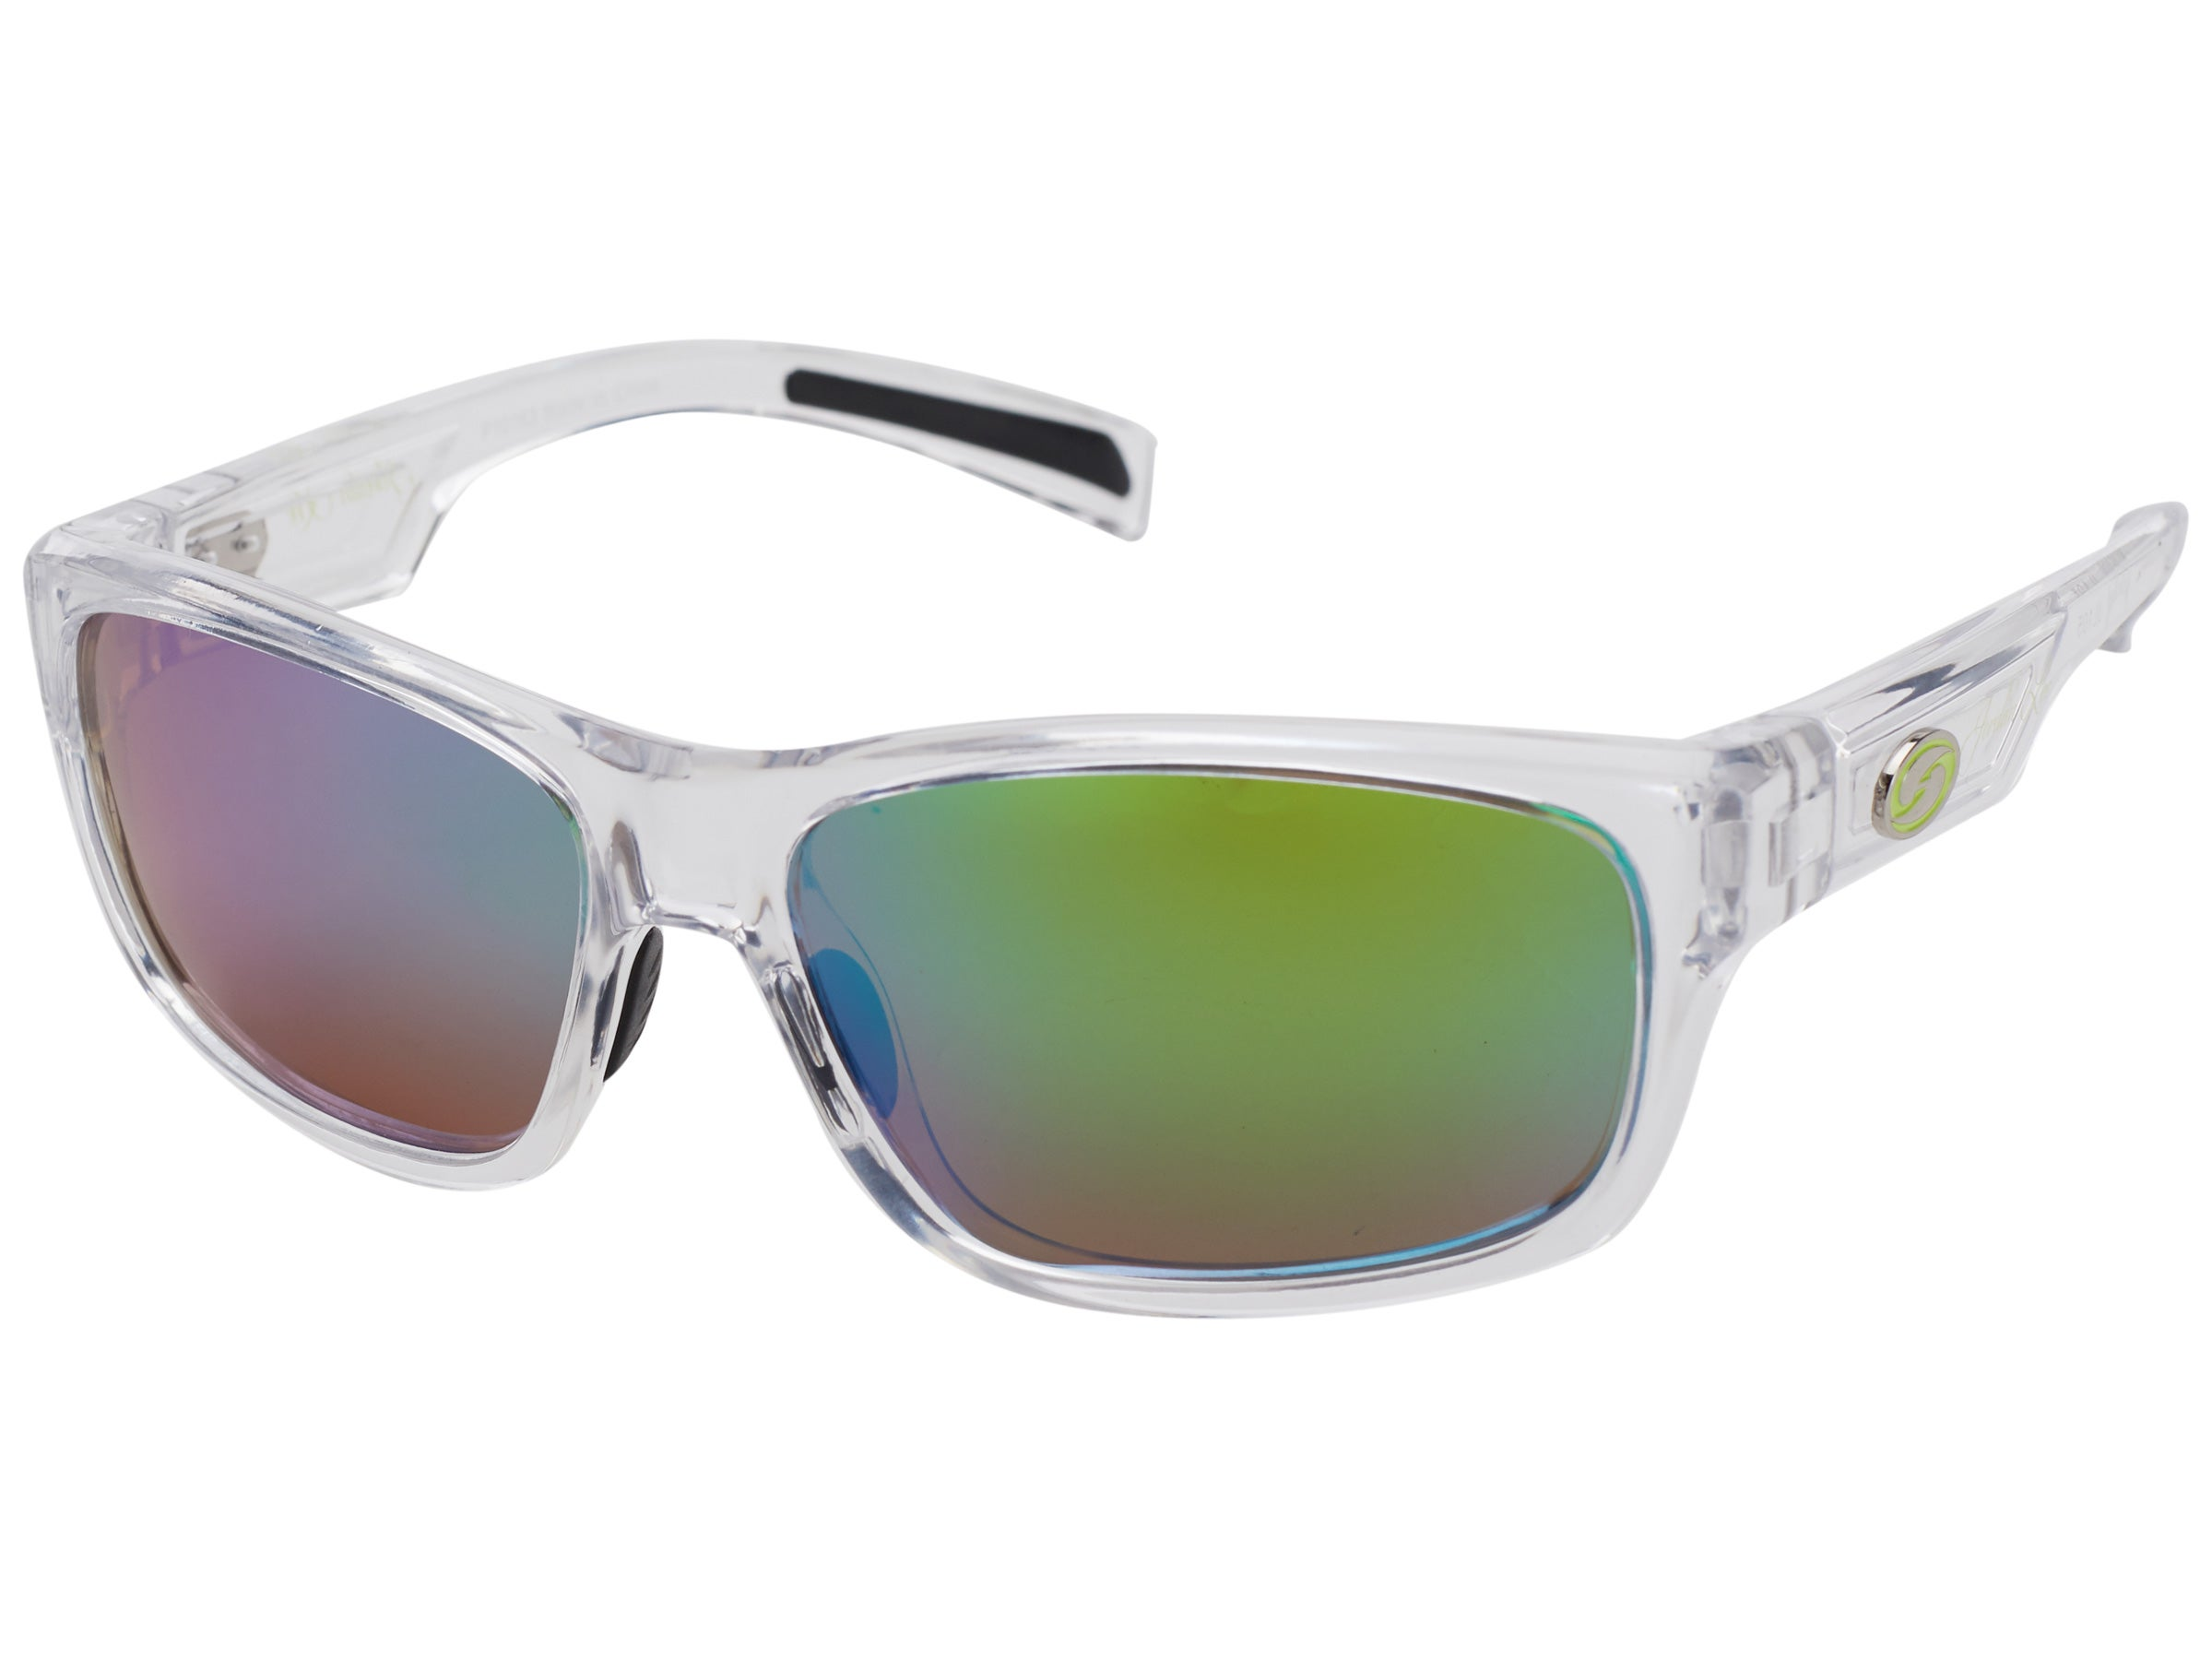 7beebf23843 Strike King Pro Series Sunglasses